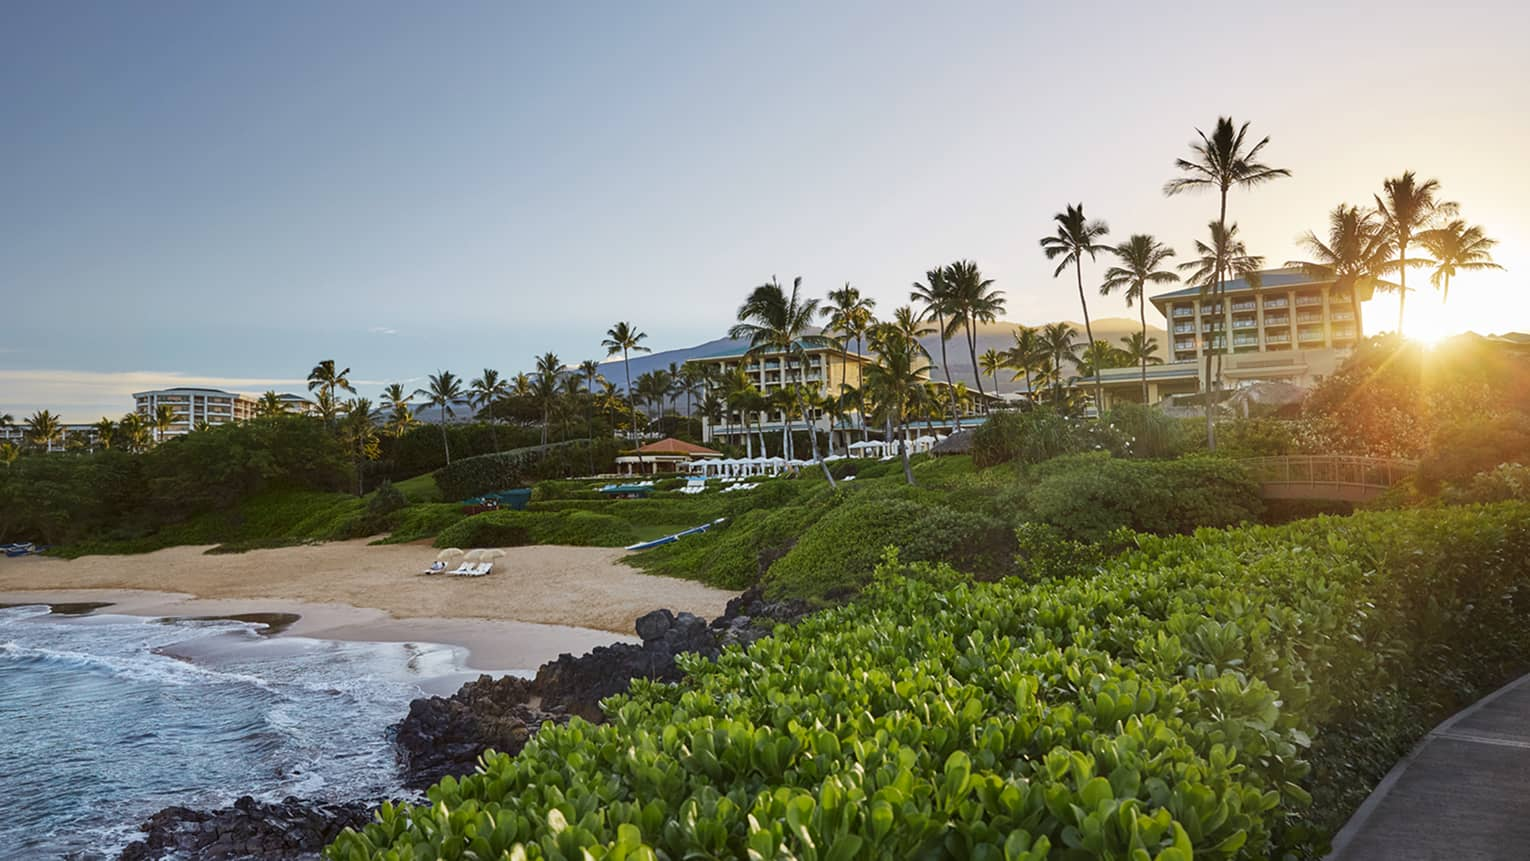 Four Seasons resort and beachfront at sunset, looking over ocean through lush green plants